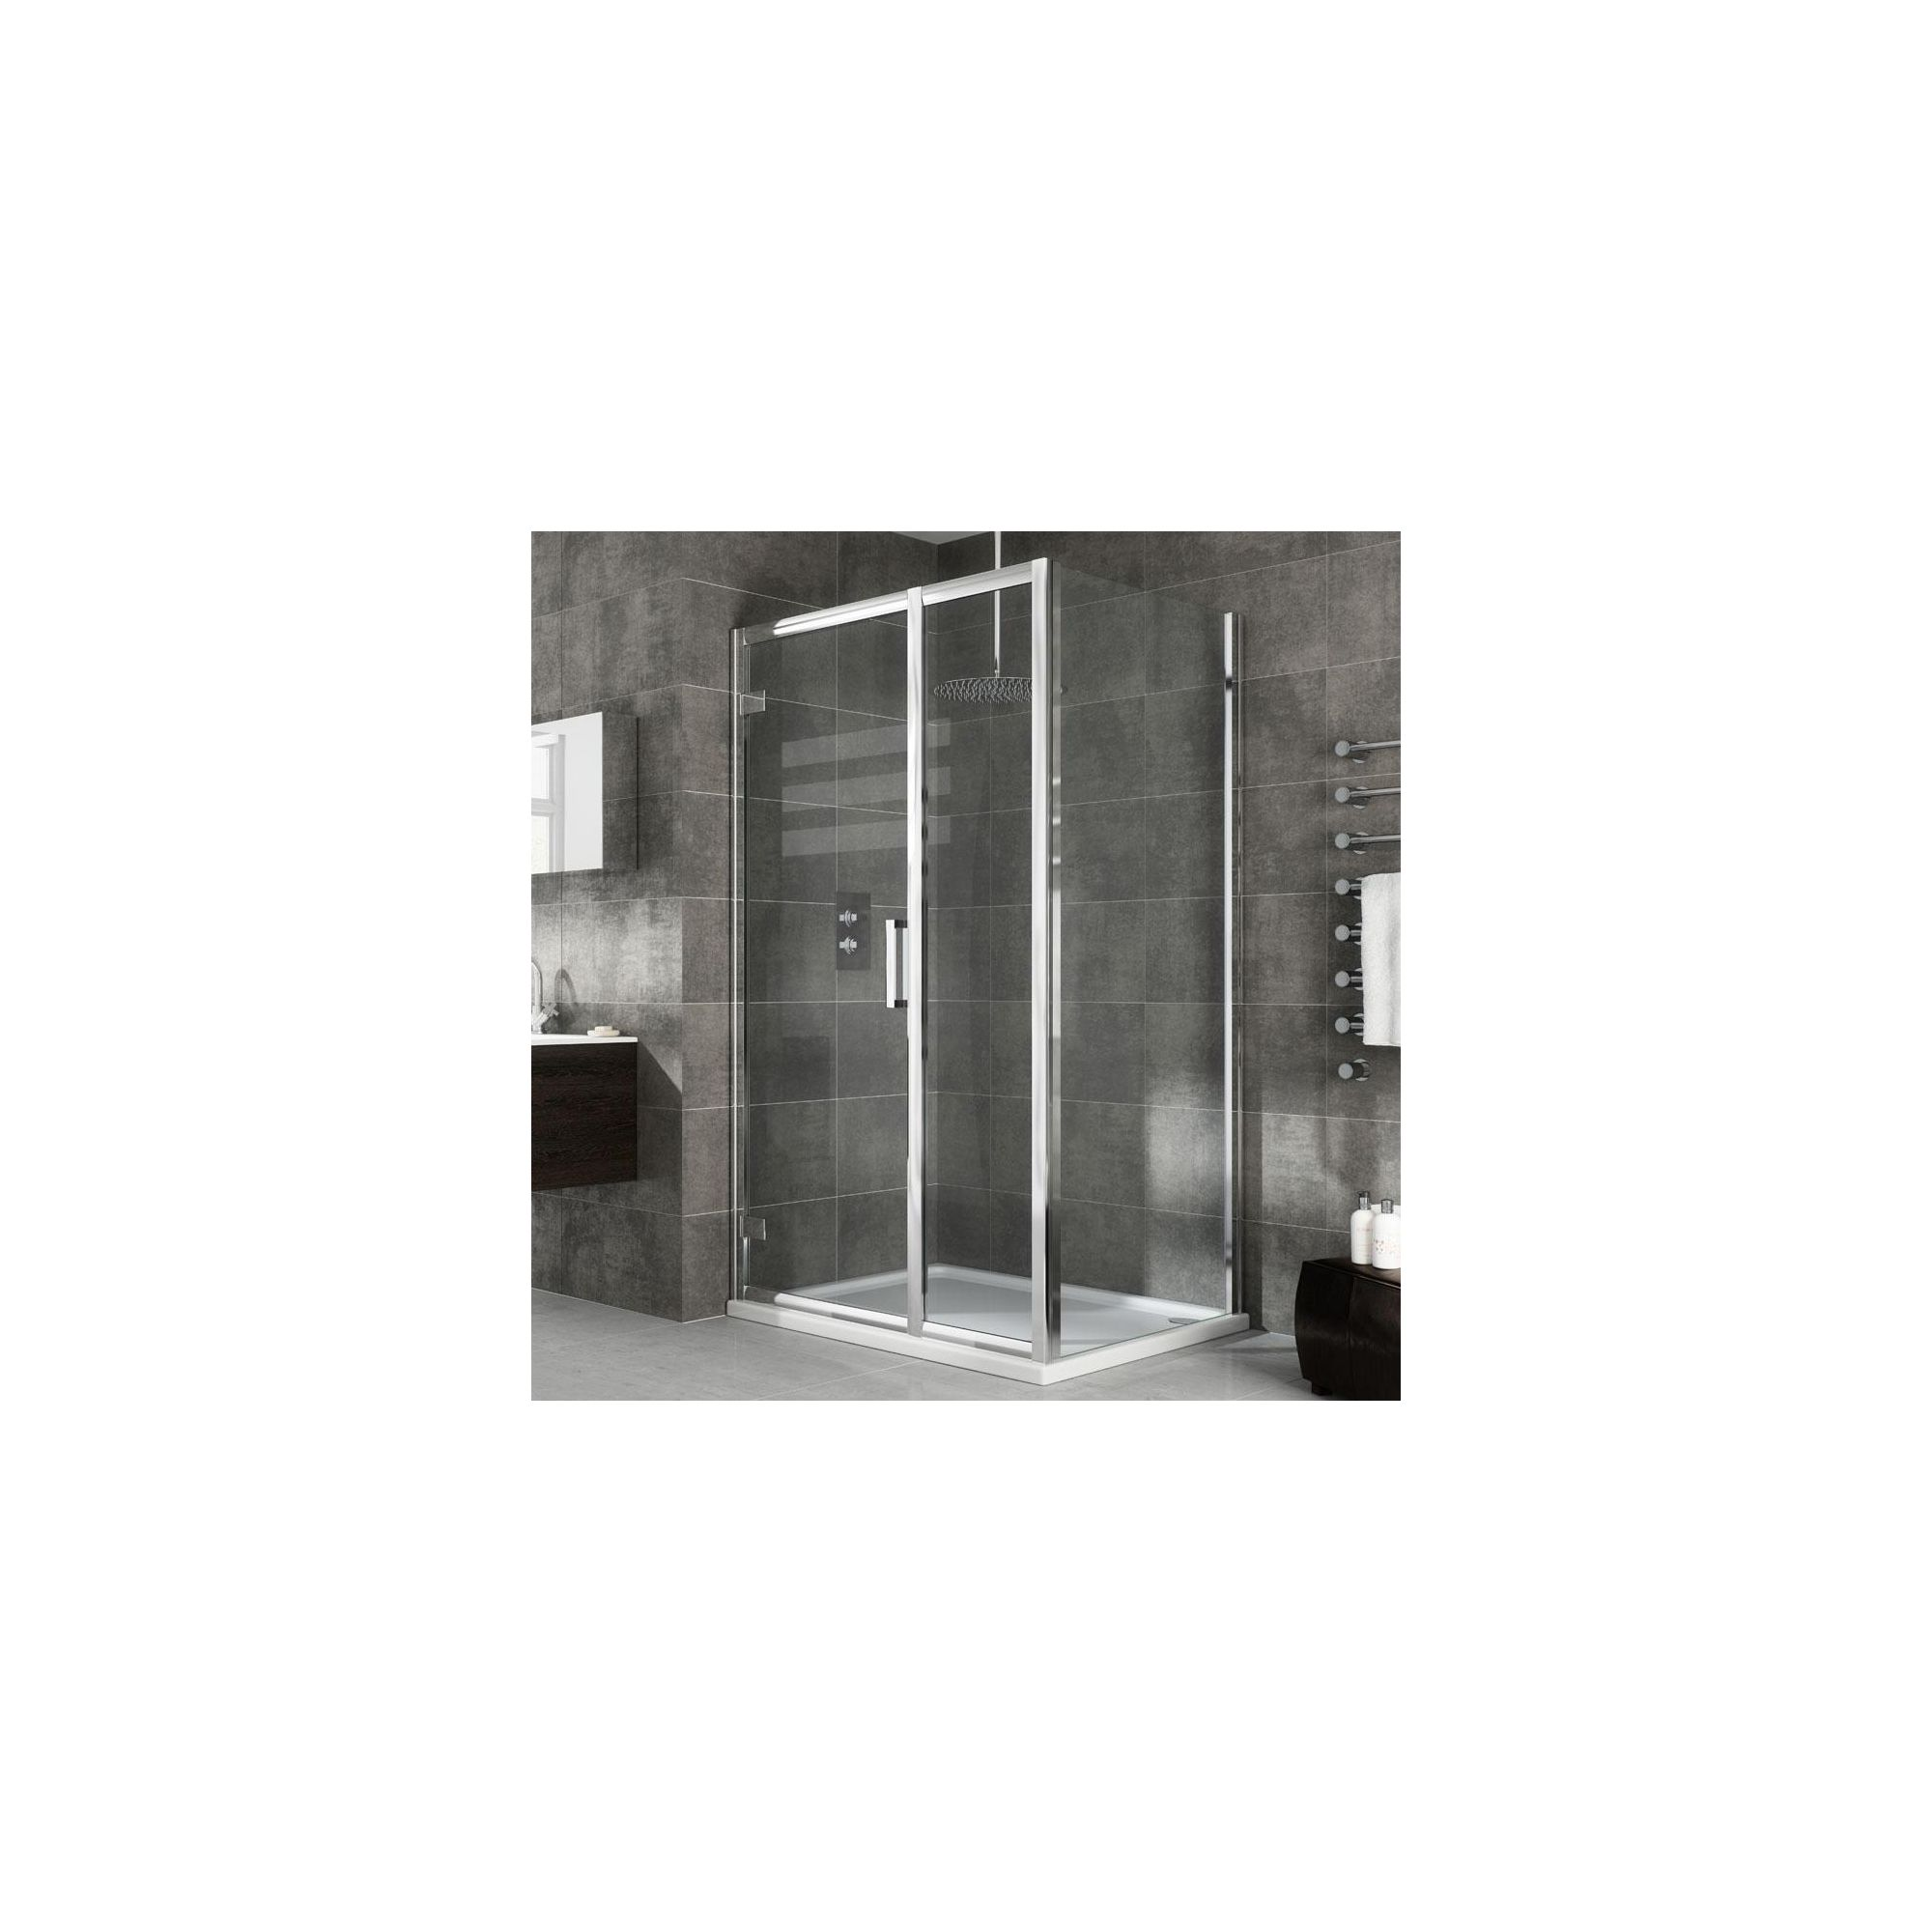 Elemis Eternity Inline Hinged Shower Door, 1000mm Wide, 8mm Glass at Tesco Direct